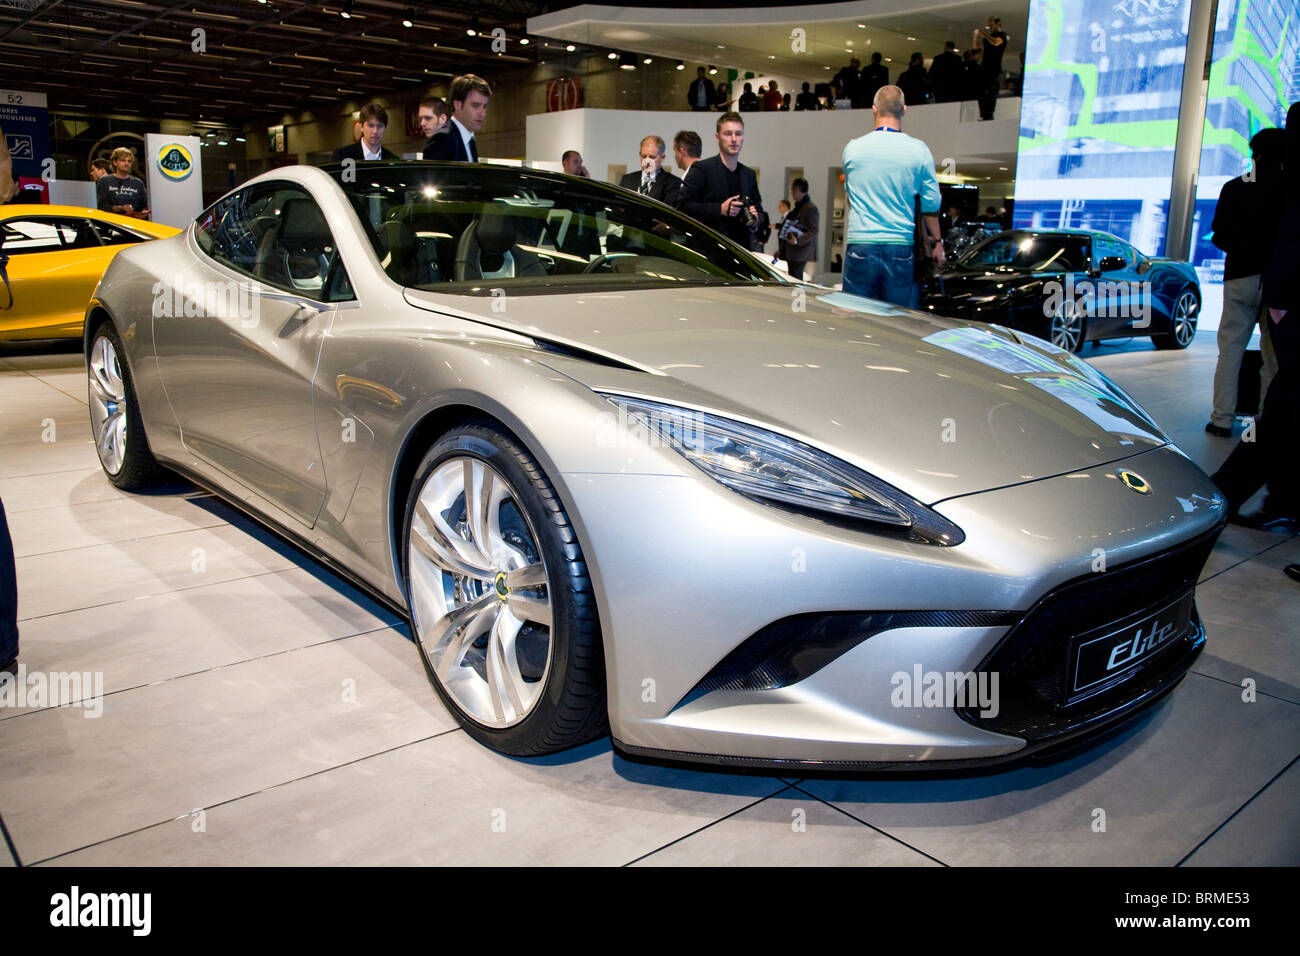 Paris motor show 2010 and the Lotus Elite - Stock Image